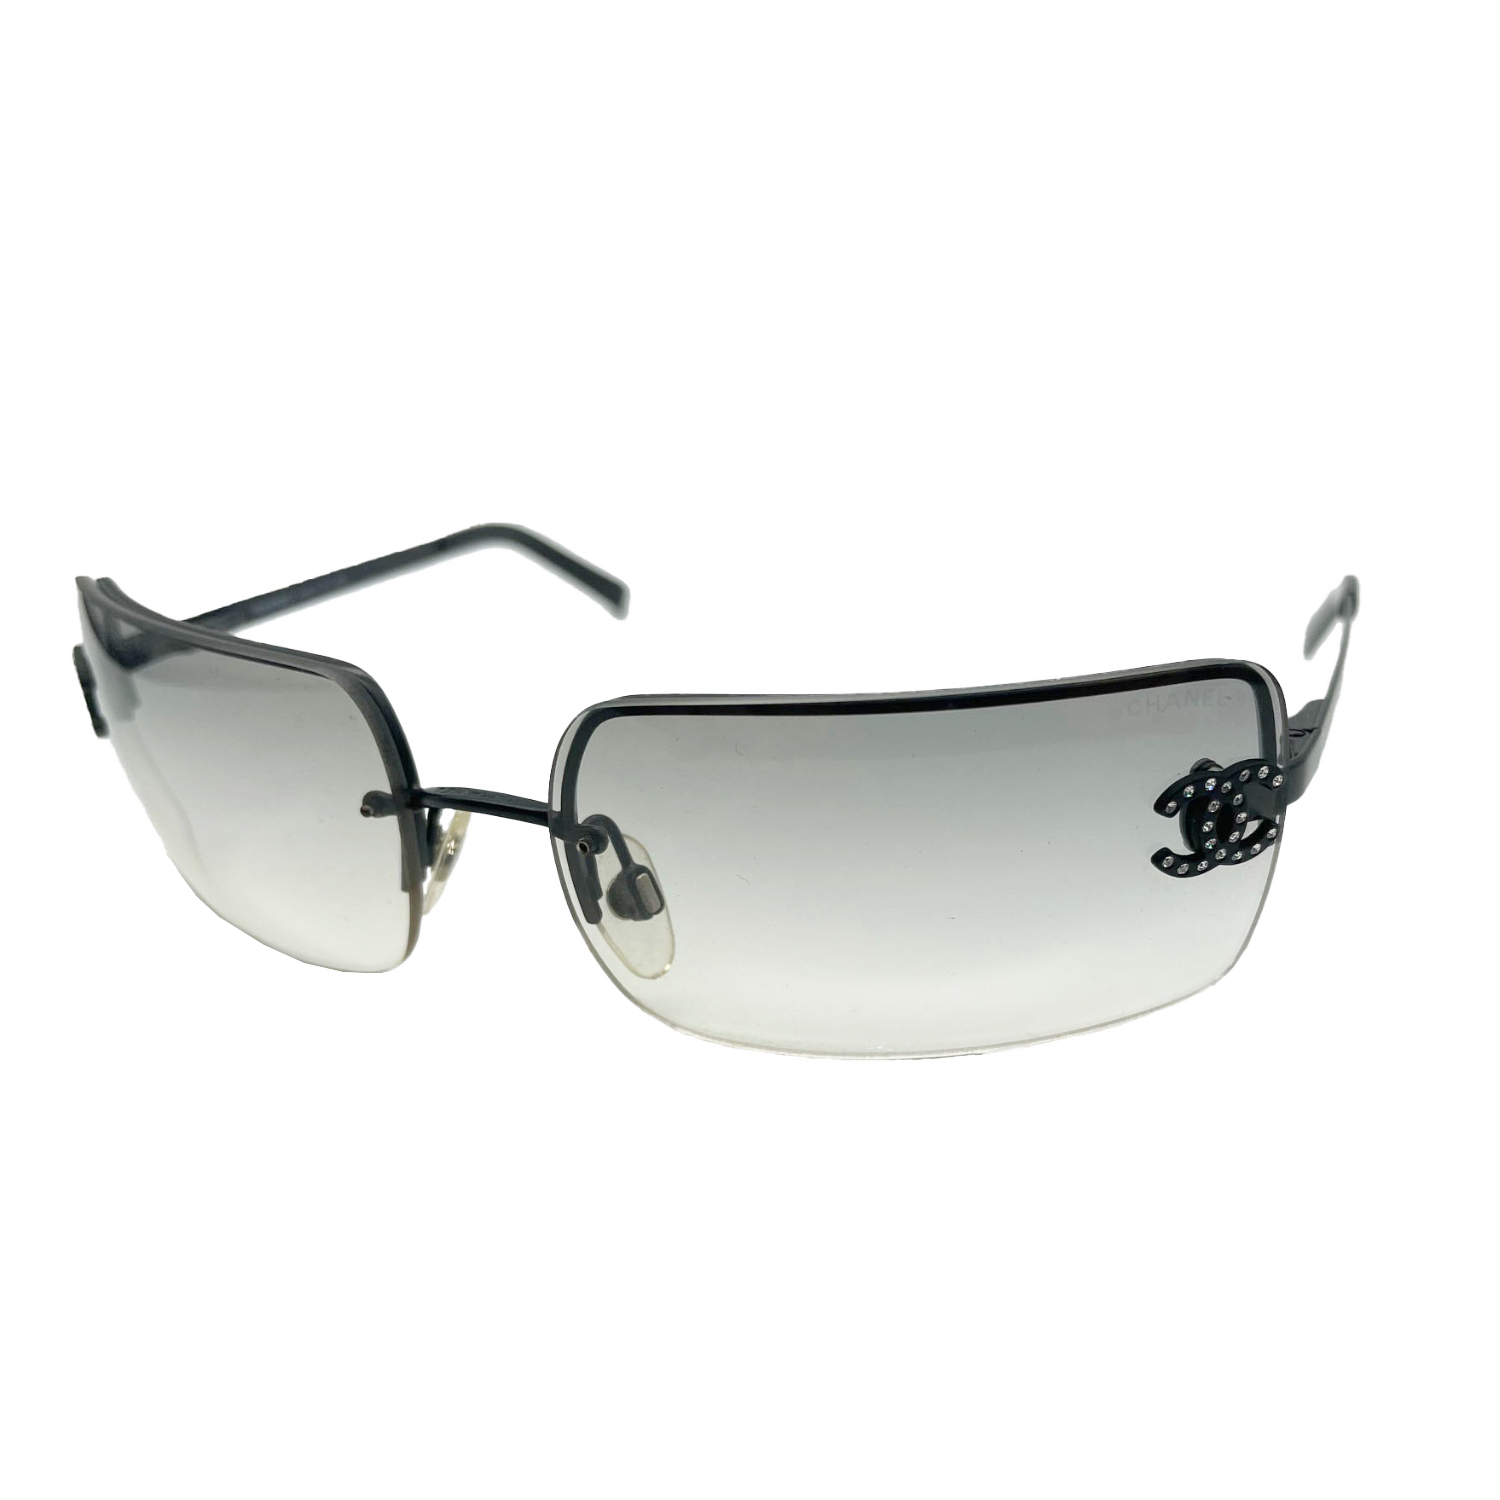 Vintage Chanel Diamante Rimless Sunglasses in Grey/Black | NITRYL